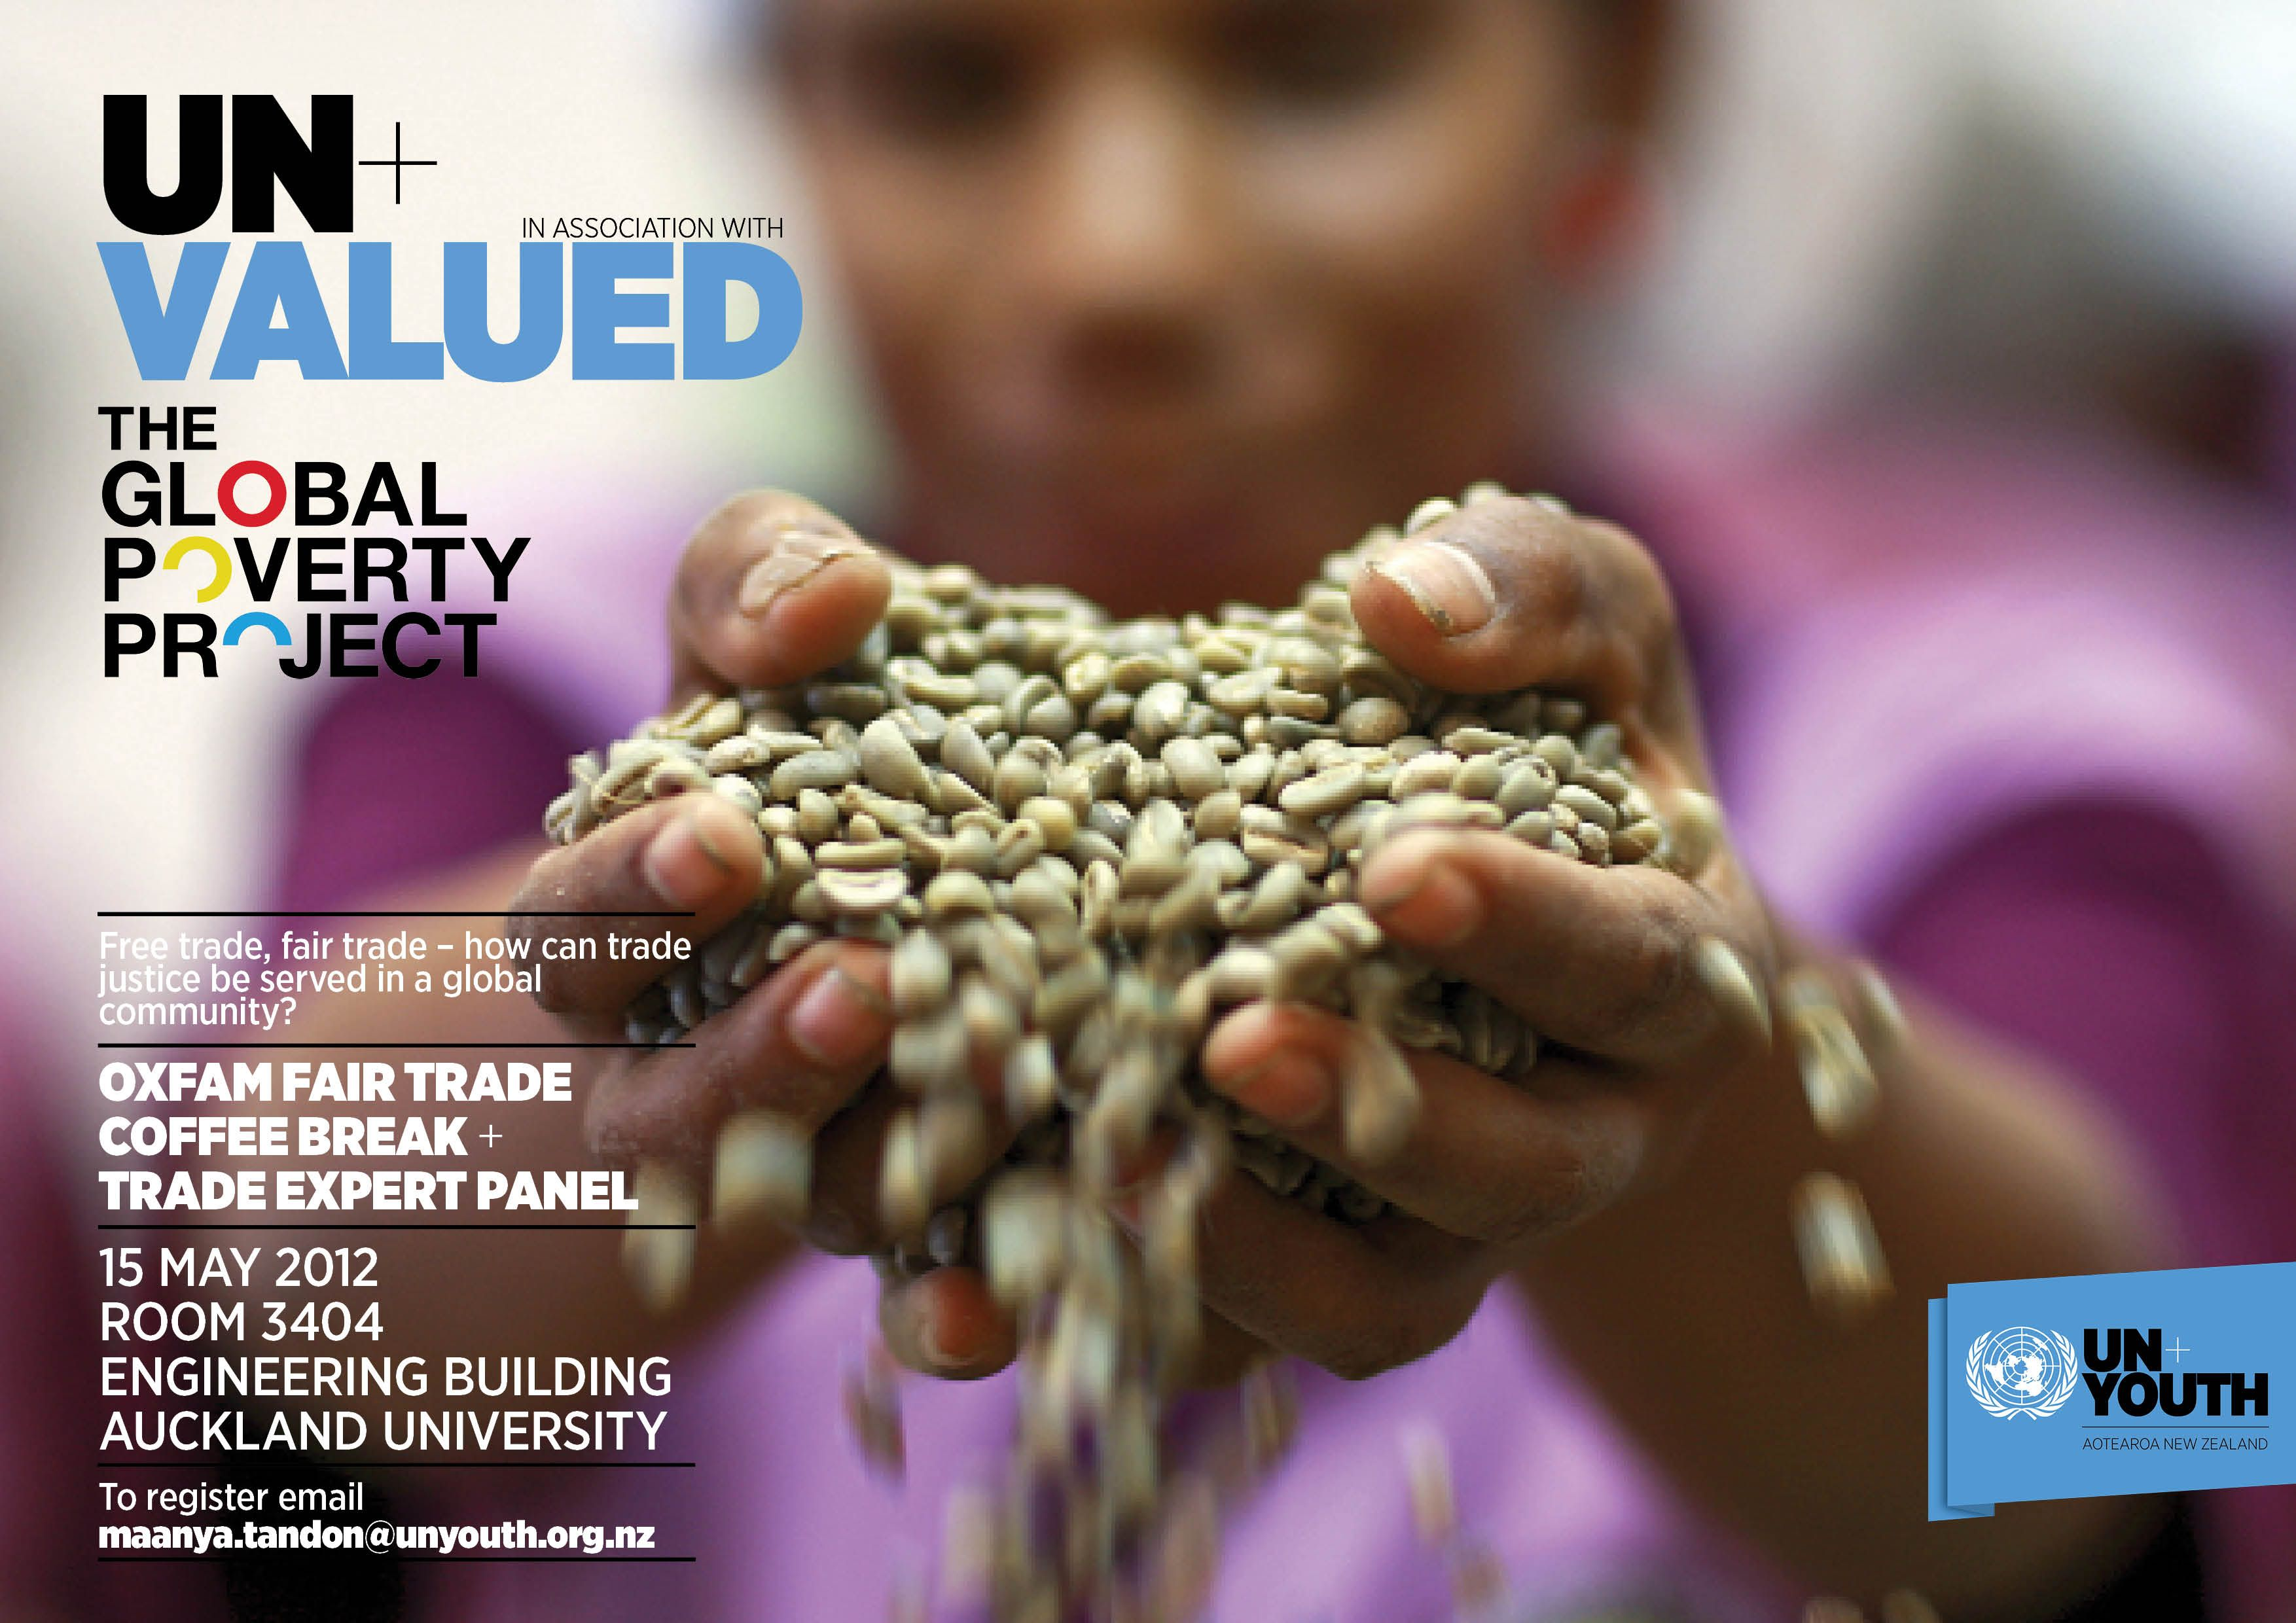 Un Valued Free Trade Fair Trade How Can Trade Justice Be Served In A Global Community Expensive Coffee Cash Crop Green Coffee